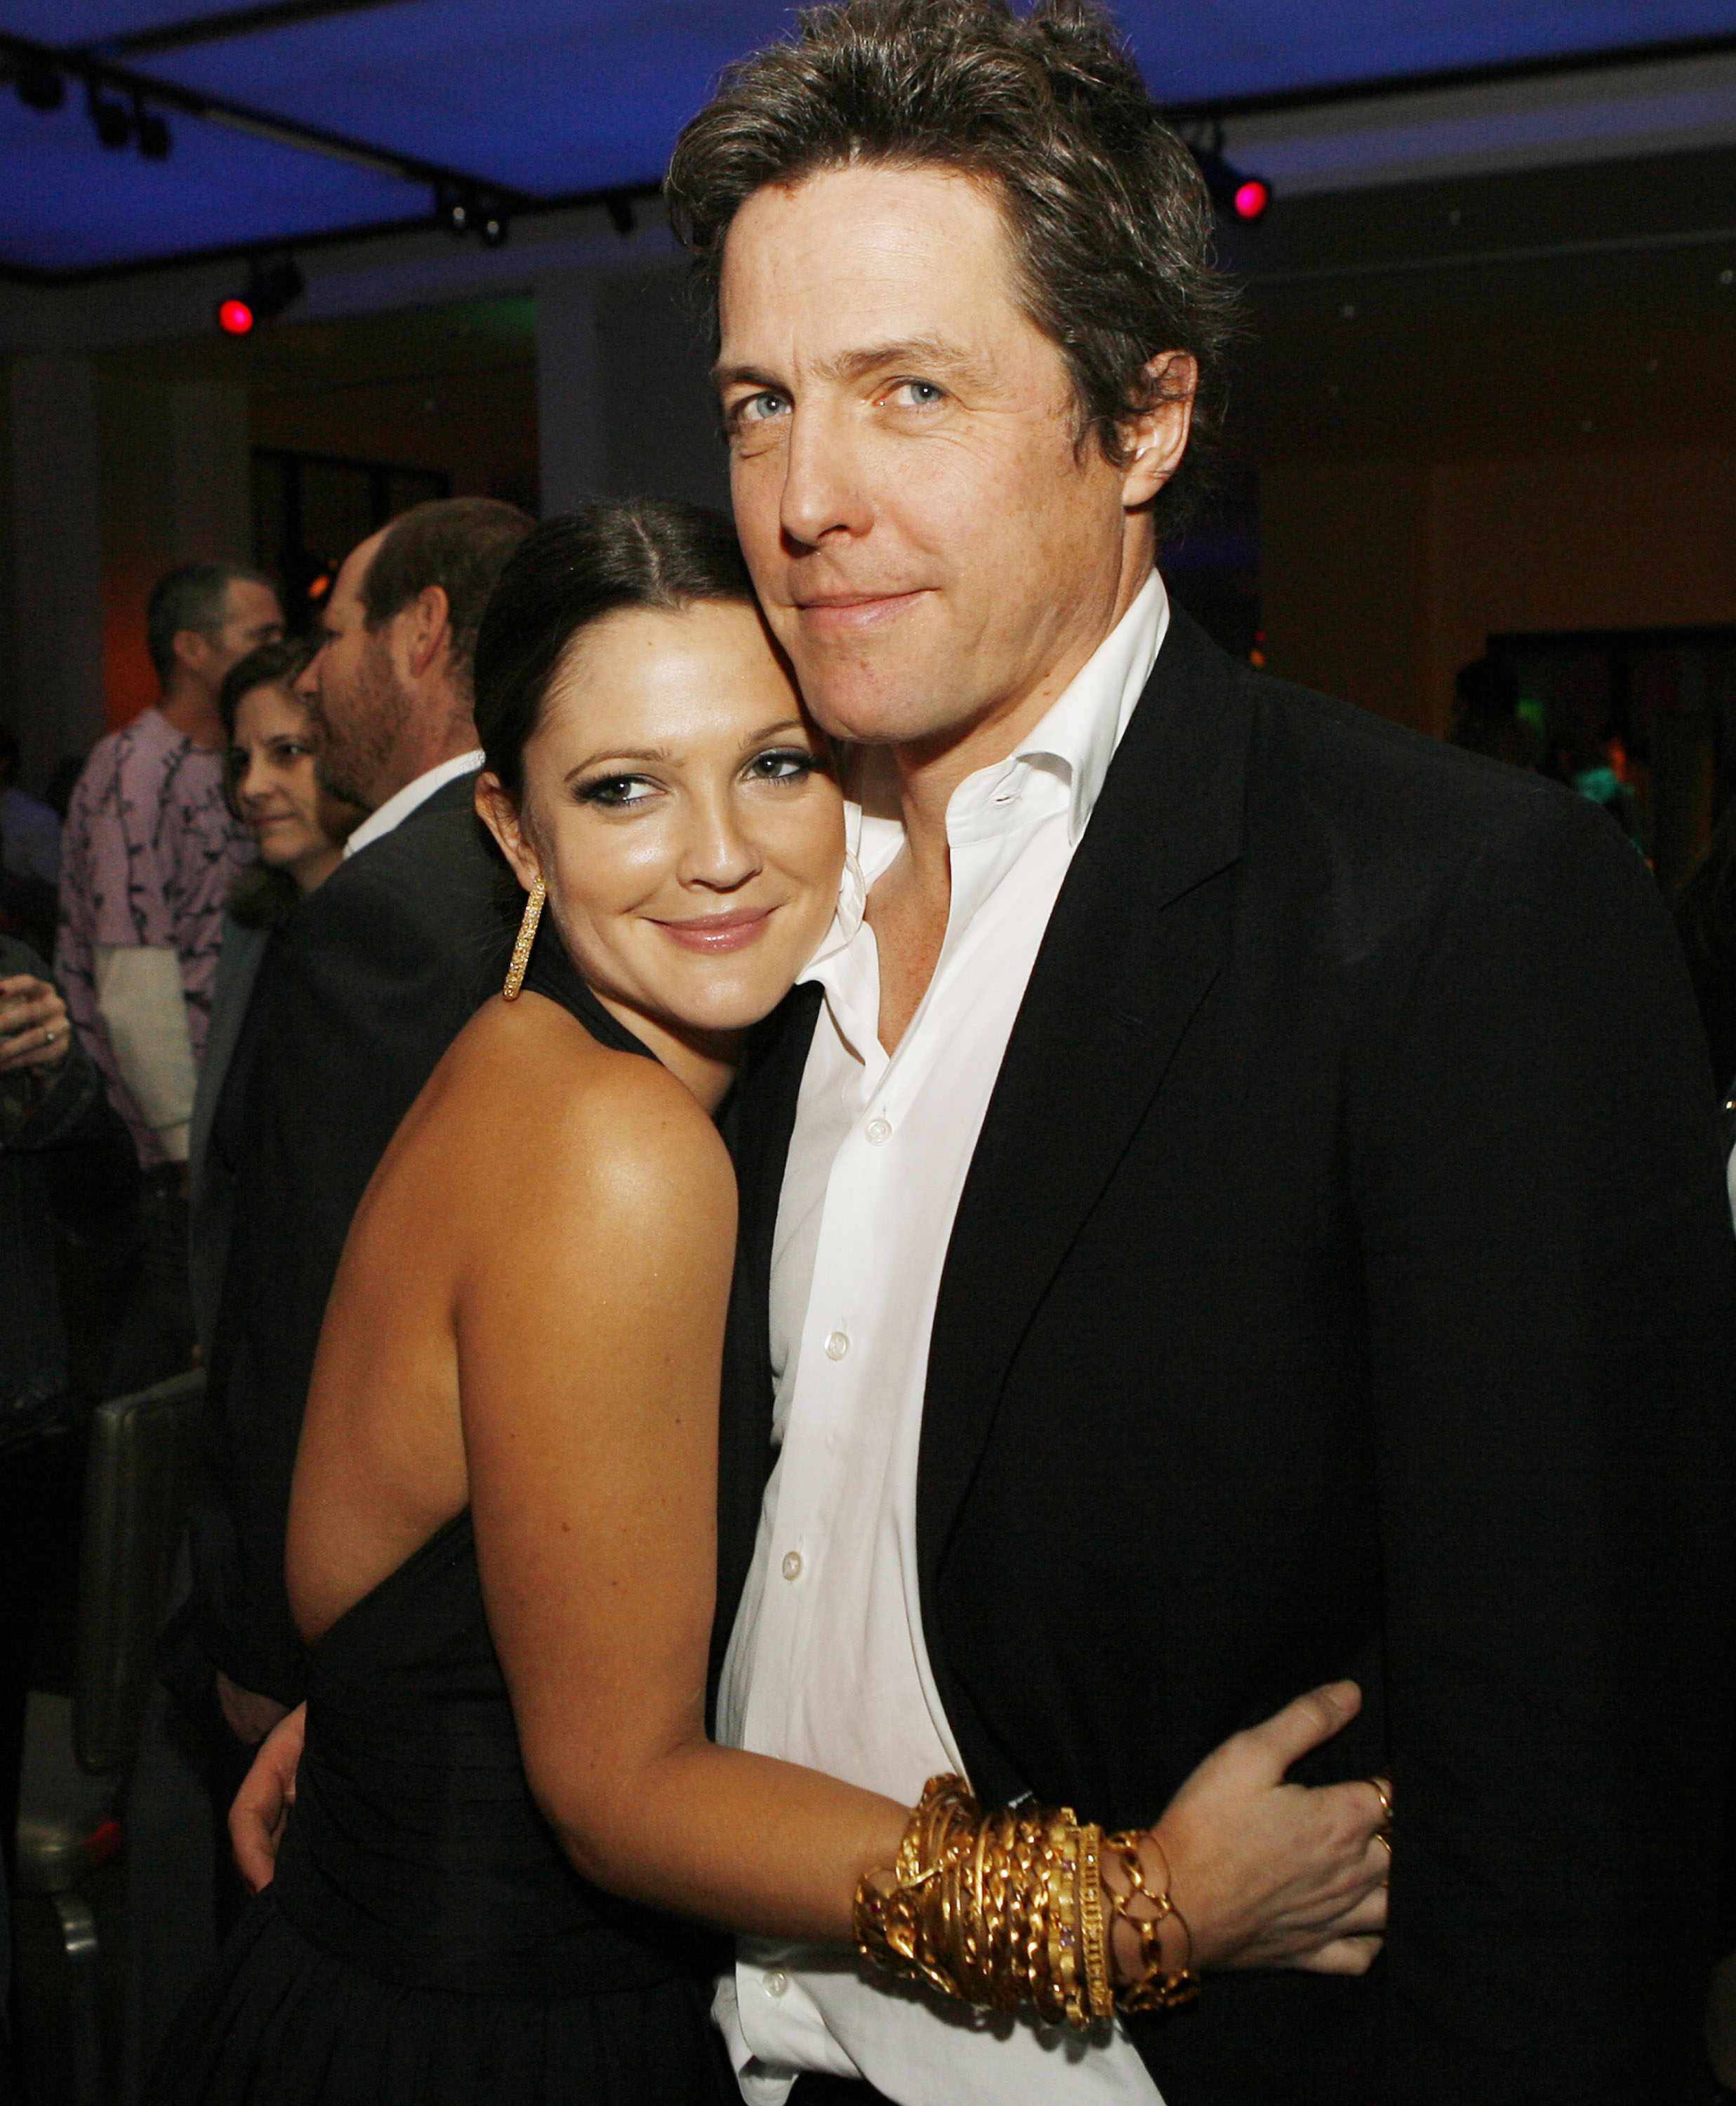 """Actors Drew Barrymore and Hugh Grant pose at the afterparty for the premiere of Warner Bros. Picture's """"Music and Lyrics"""" at the Annix on February 7, 2007 in Los Angeles, California."""